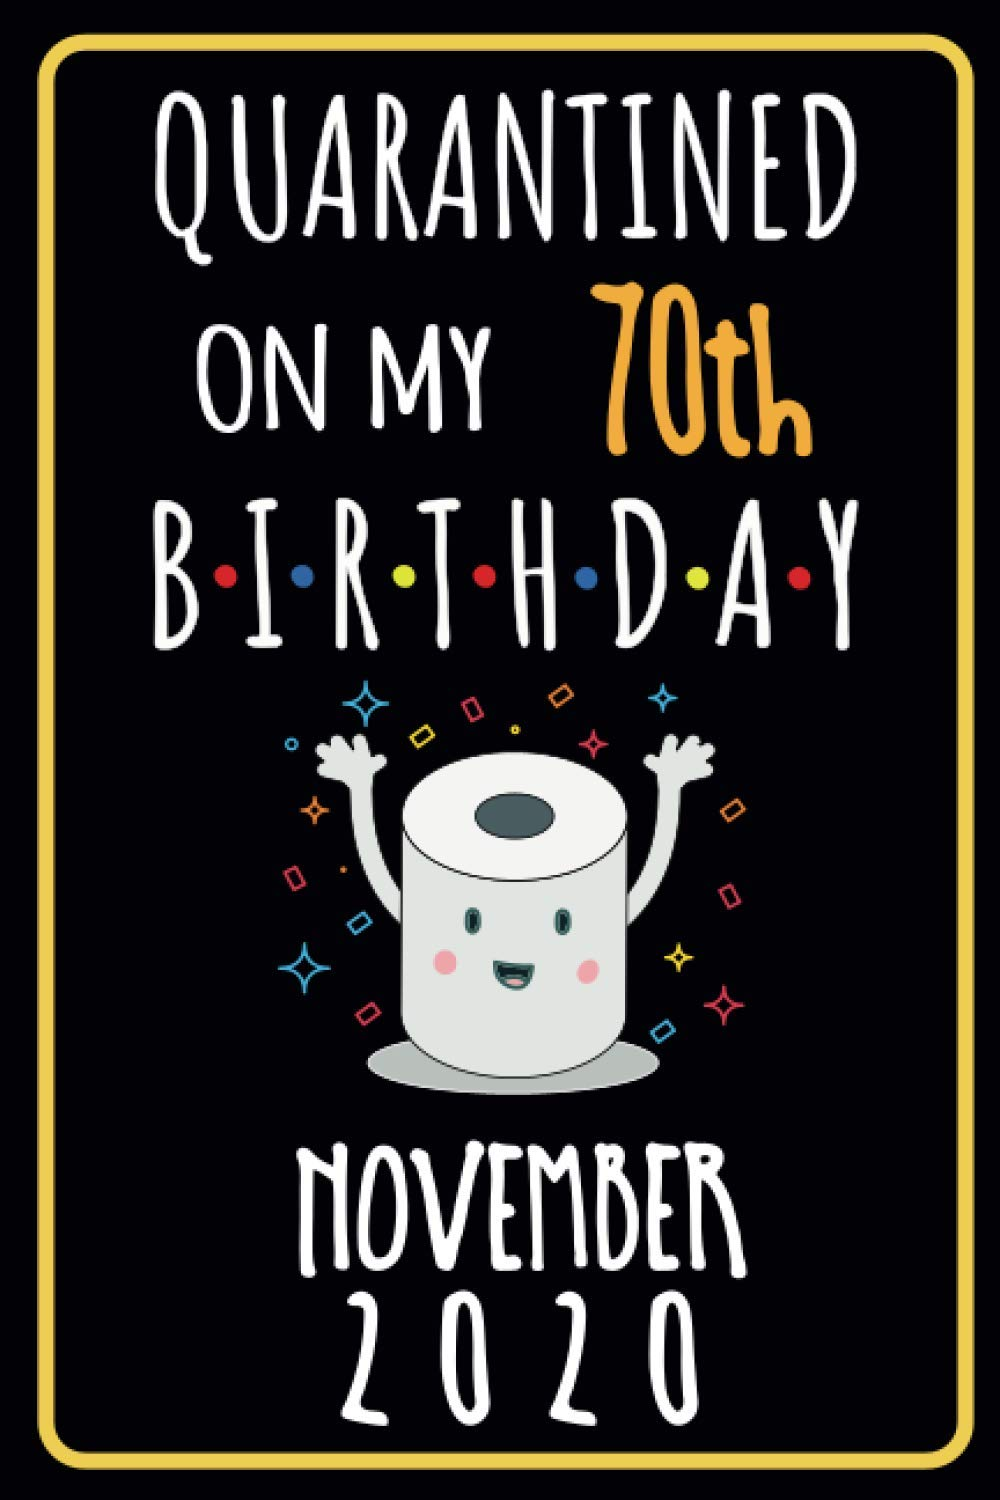 November 2020 Quarantined On My 70th Birthday Funny Happy 70th Birthdays Gift Idea During Quarantine 70 Year Old Birthday Gifts Ideas For 70 Distancing Present Lined Notebook Journal Bd Ellj Jadel 9798697935408 Amazon Com Books